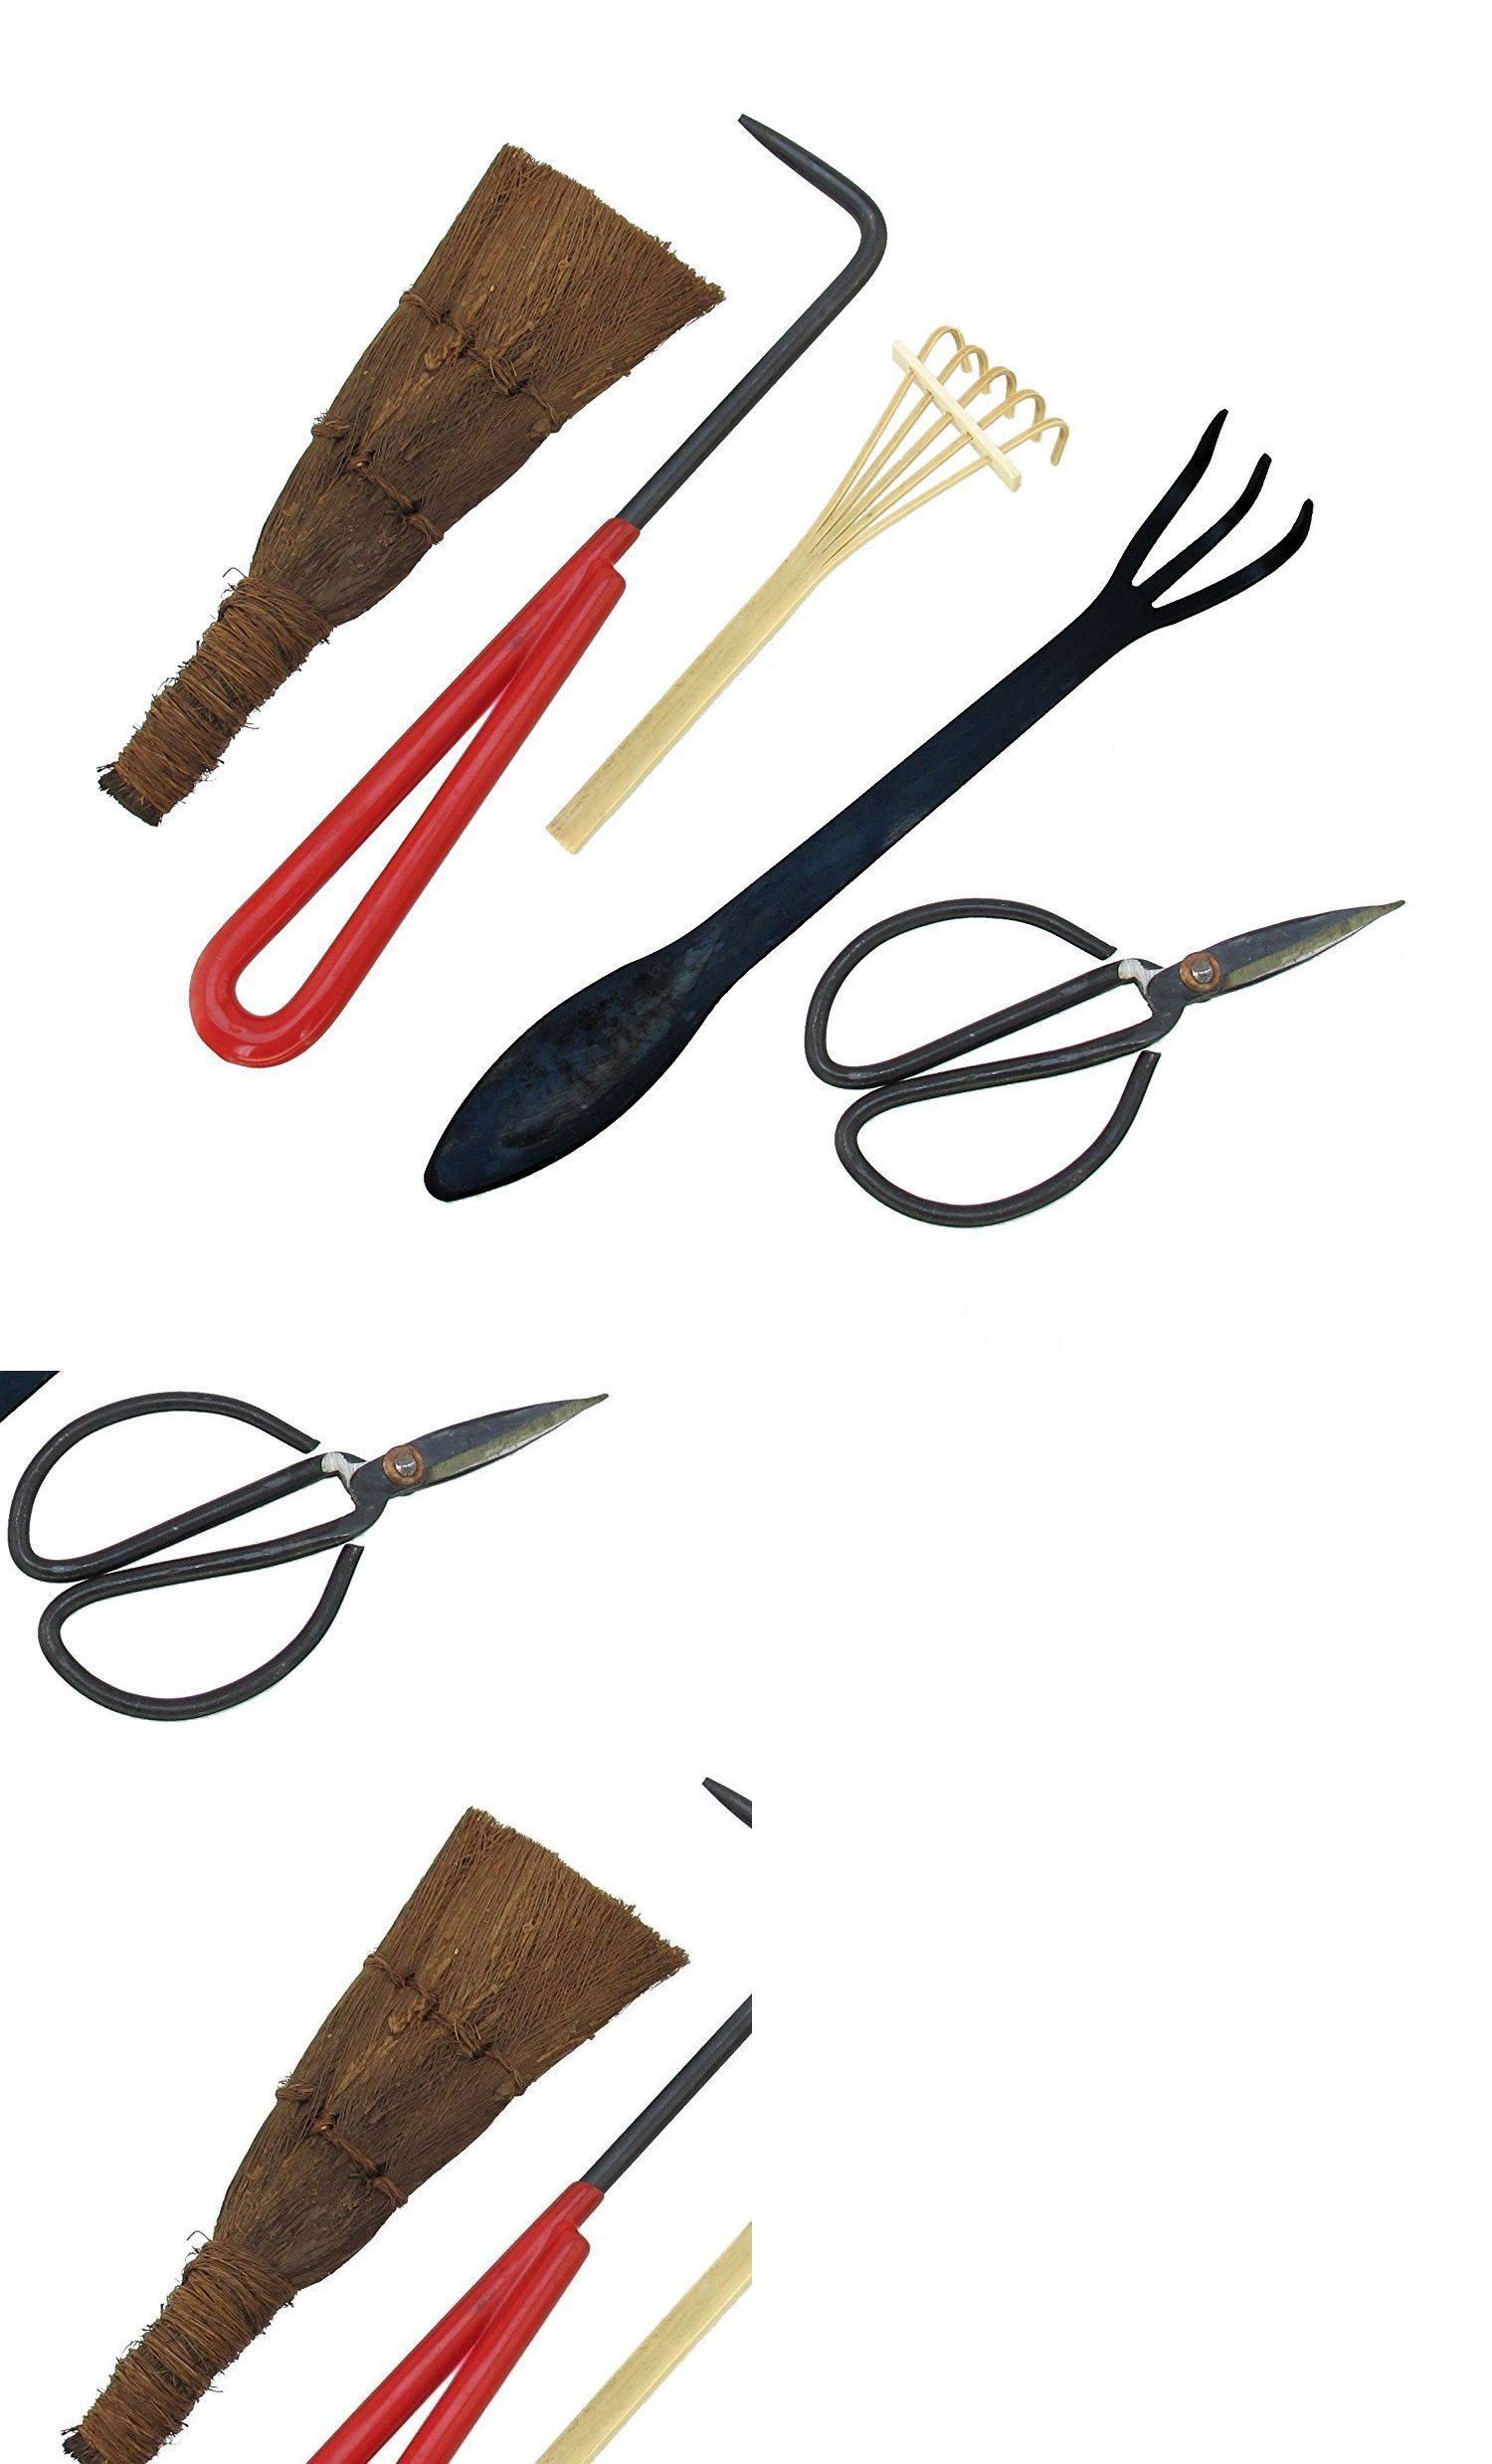 Bonsai Tool Set 5pc Root Rake Shear Root Pick Moss Brush Ebay Bonsai Tools Bonsai Bamboo Brush